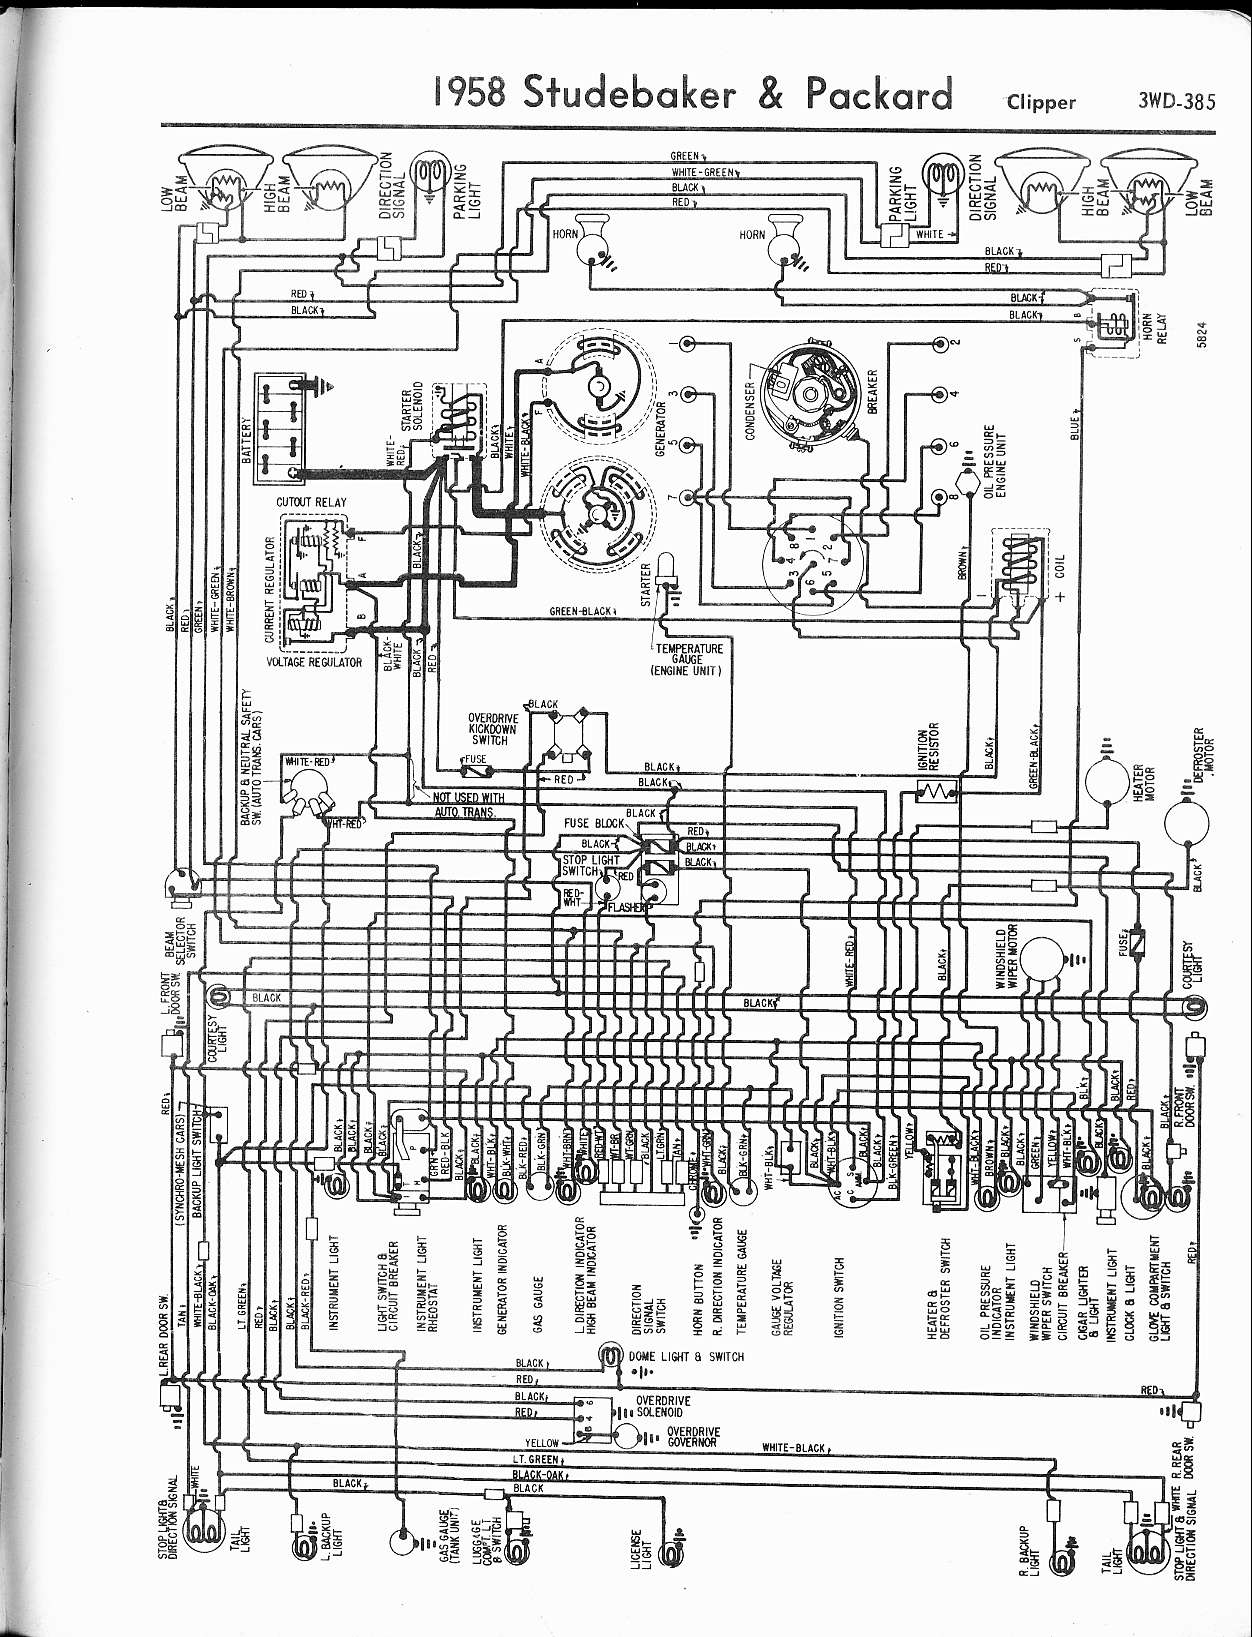 hight resolution of 1950 chevy generator wiring diagram further japanese money worksheet rh 149 28 9 5 albumss80repairpictures765picturetimingmarkdiagramdiagram